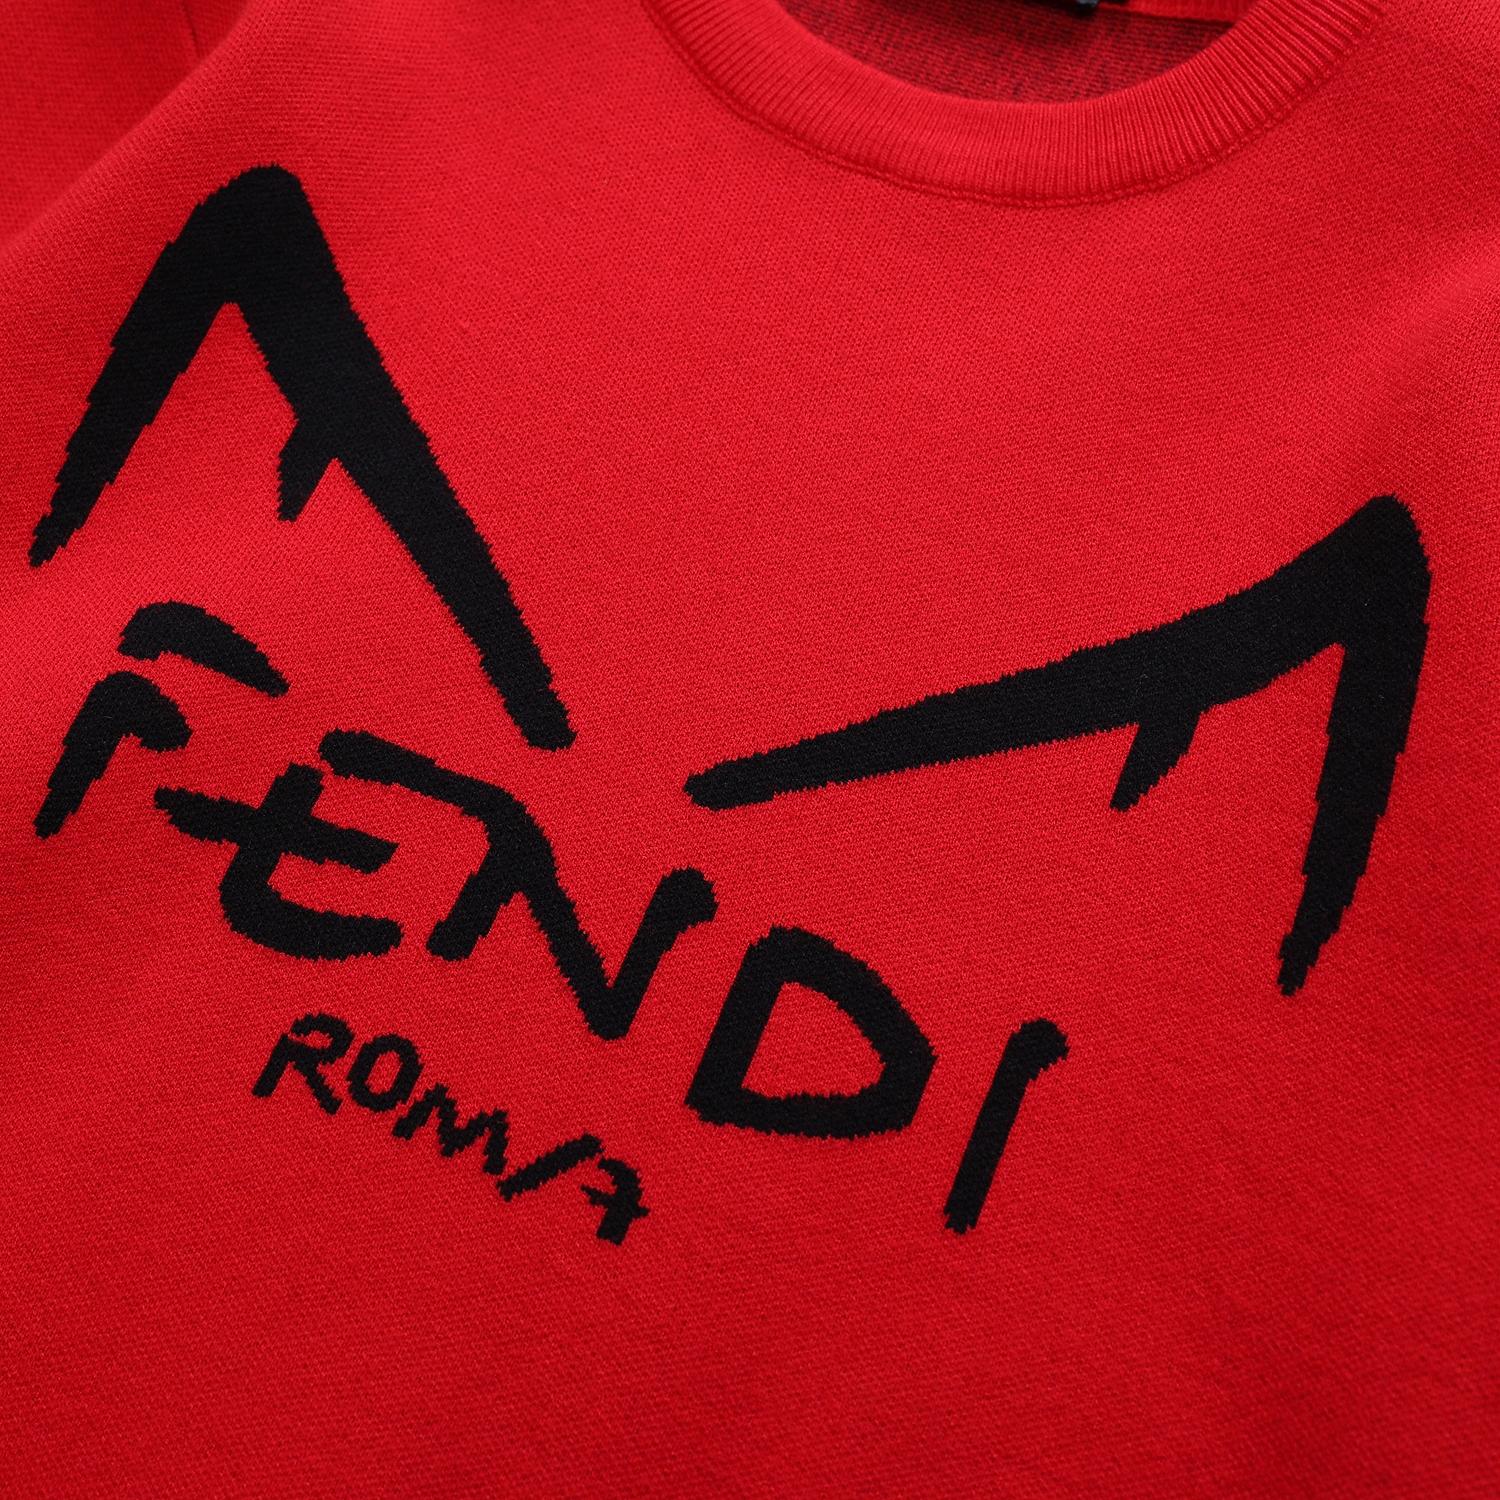 2020 Fendi Pull Over Sweaters For Men # 229476, cheap Fendi Sweaters, only $45!